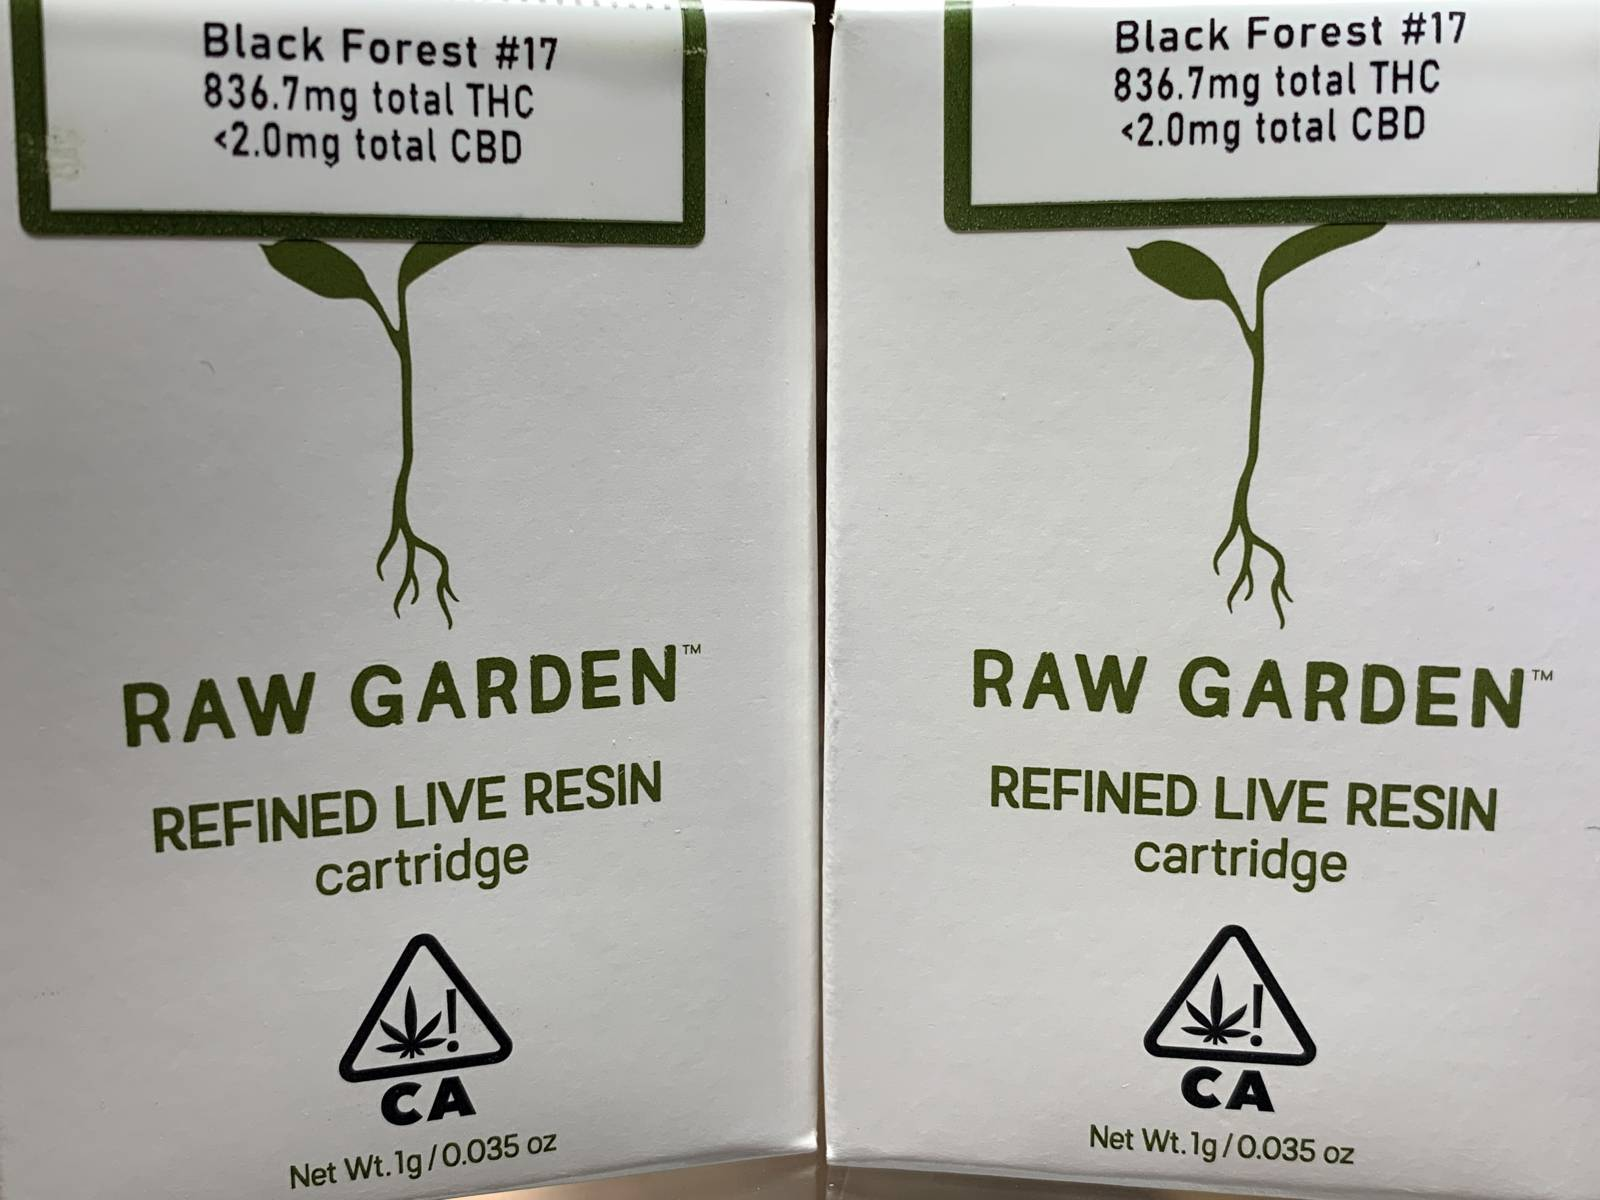 Raw Garden Black Forest #17 full gram cartridge